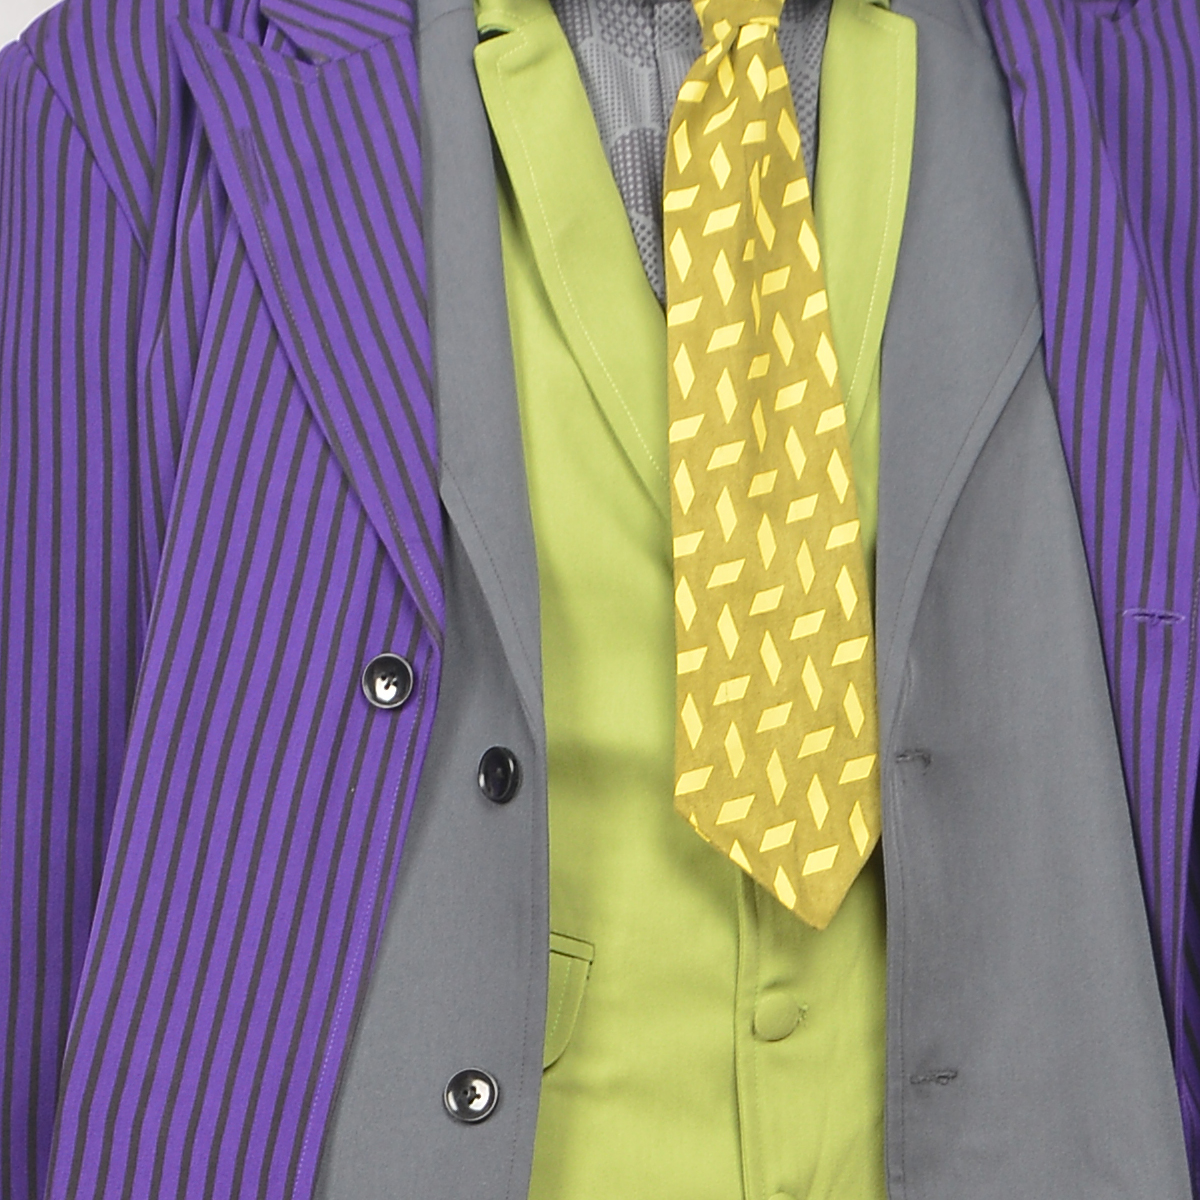 how to make a joker costume from the dark knight